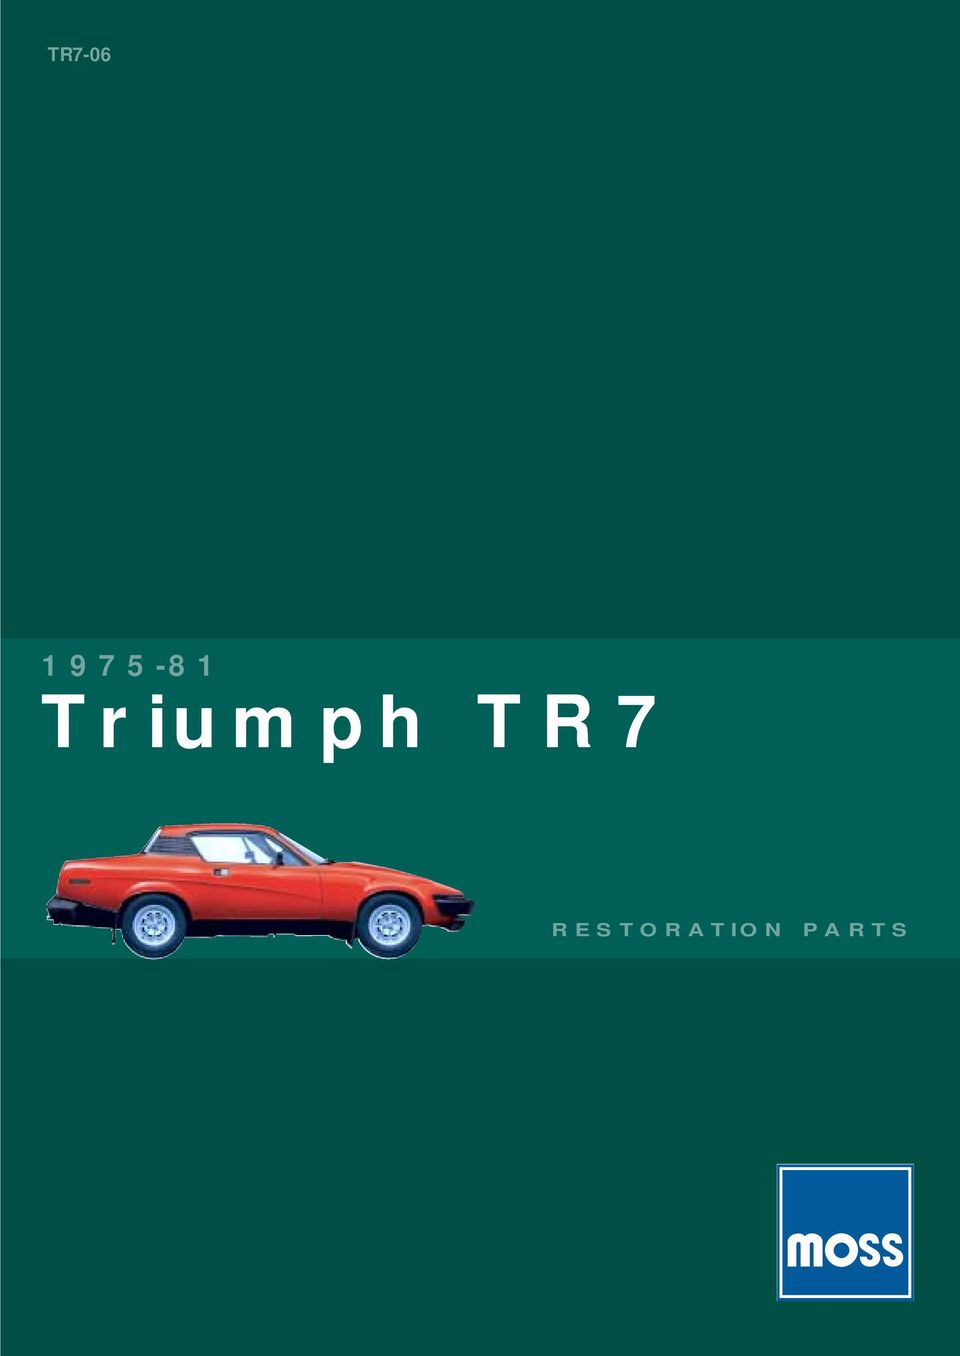 Tr Triumph Tr7 Restoration Parts Pdf Wiring Diagram For 1976 2 Even Your Car Dreamsof What It Wants And Where To Find In This Hectic World Its Not Always Possible Time The Pleasures Life